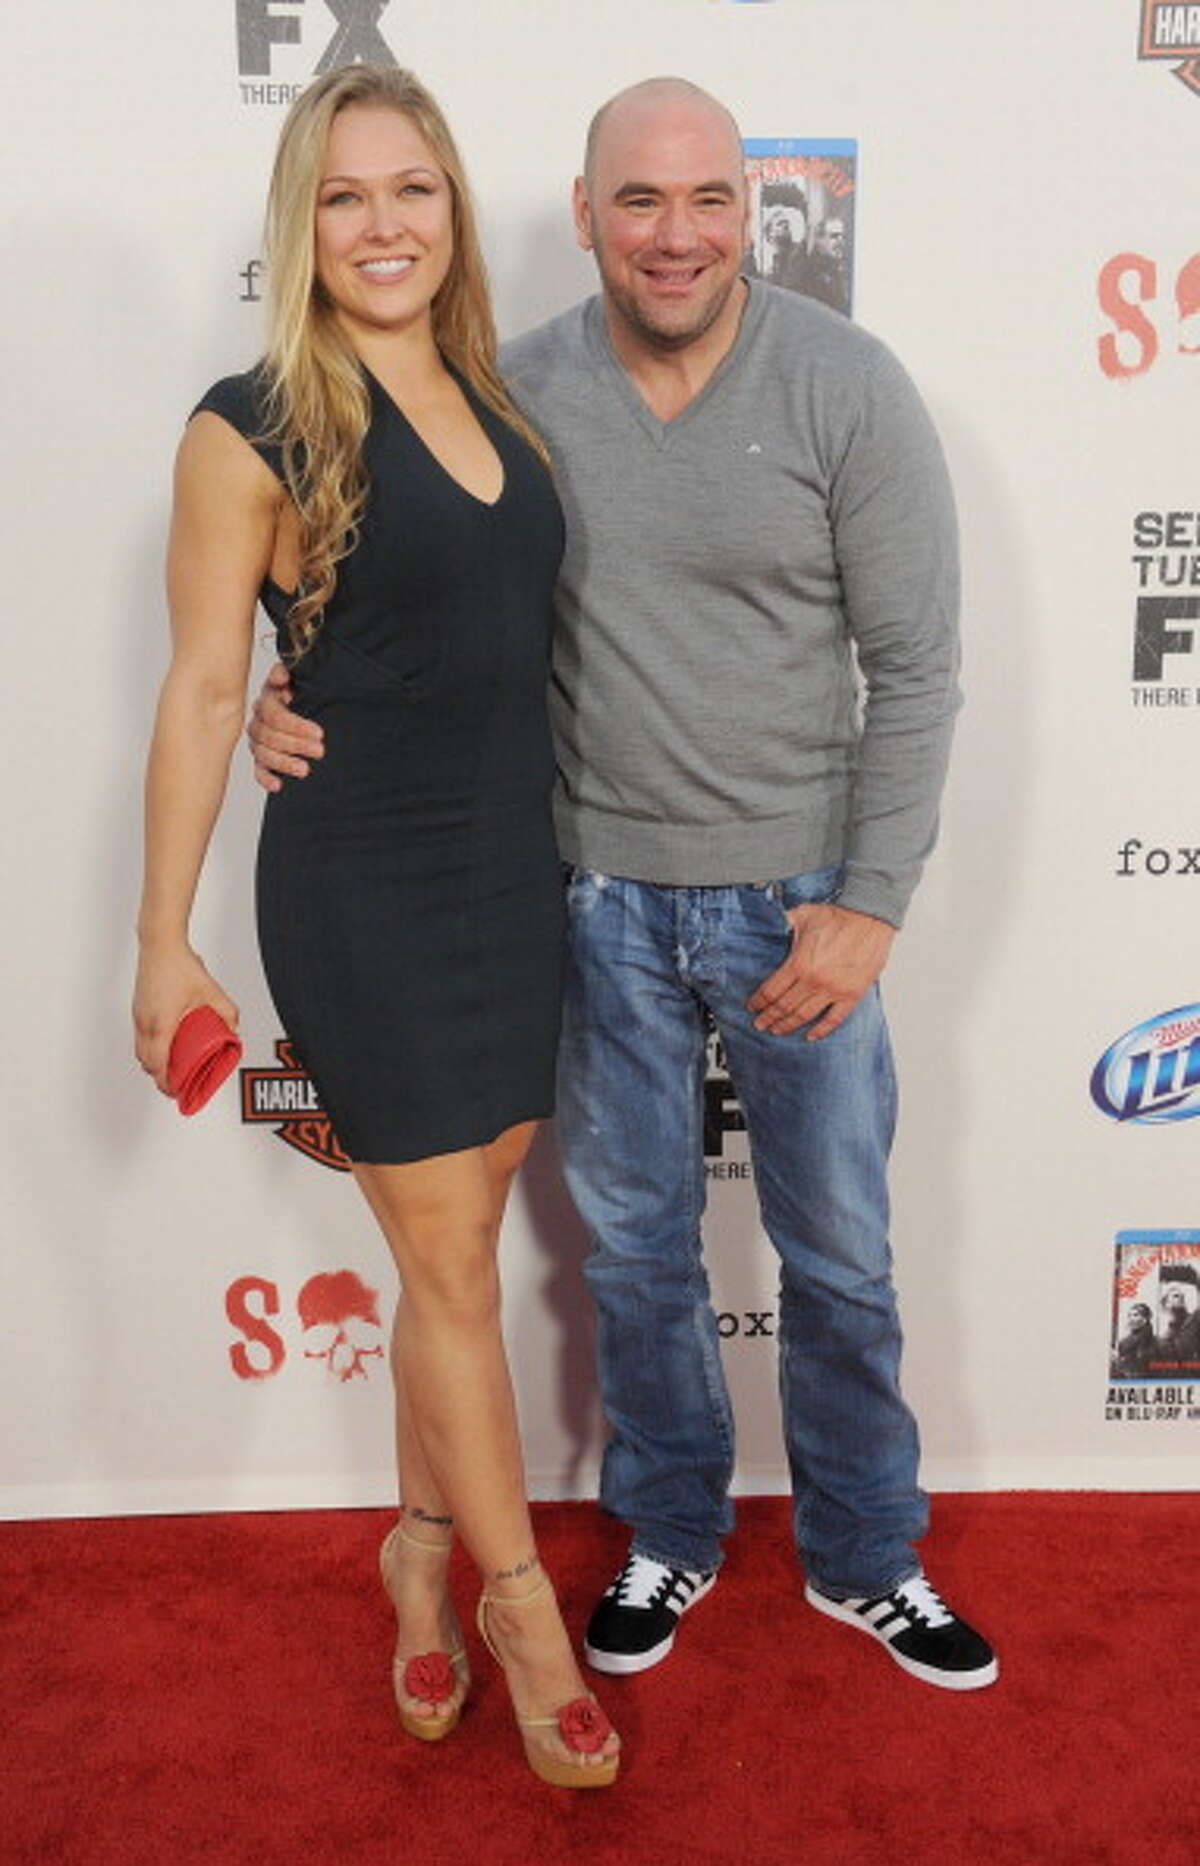 """LOS ANGELES, CA - SEPTEMBER 08: Ronda Rousey and Dana White arrive at the """"Sons of Anarchy"""" season 5 premiere screening at Westwood Village on September 8, 2012 in Los Angeles, California. (Photo by Gregg DeGuire/WireImage)"""